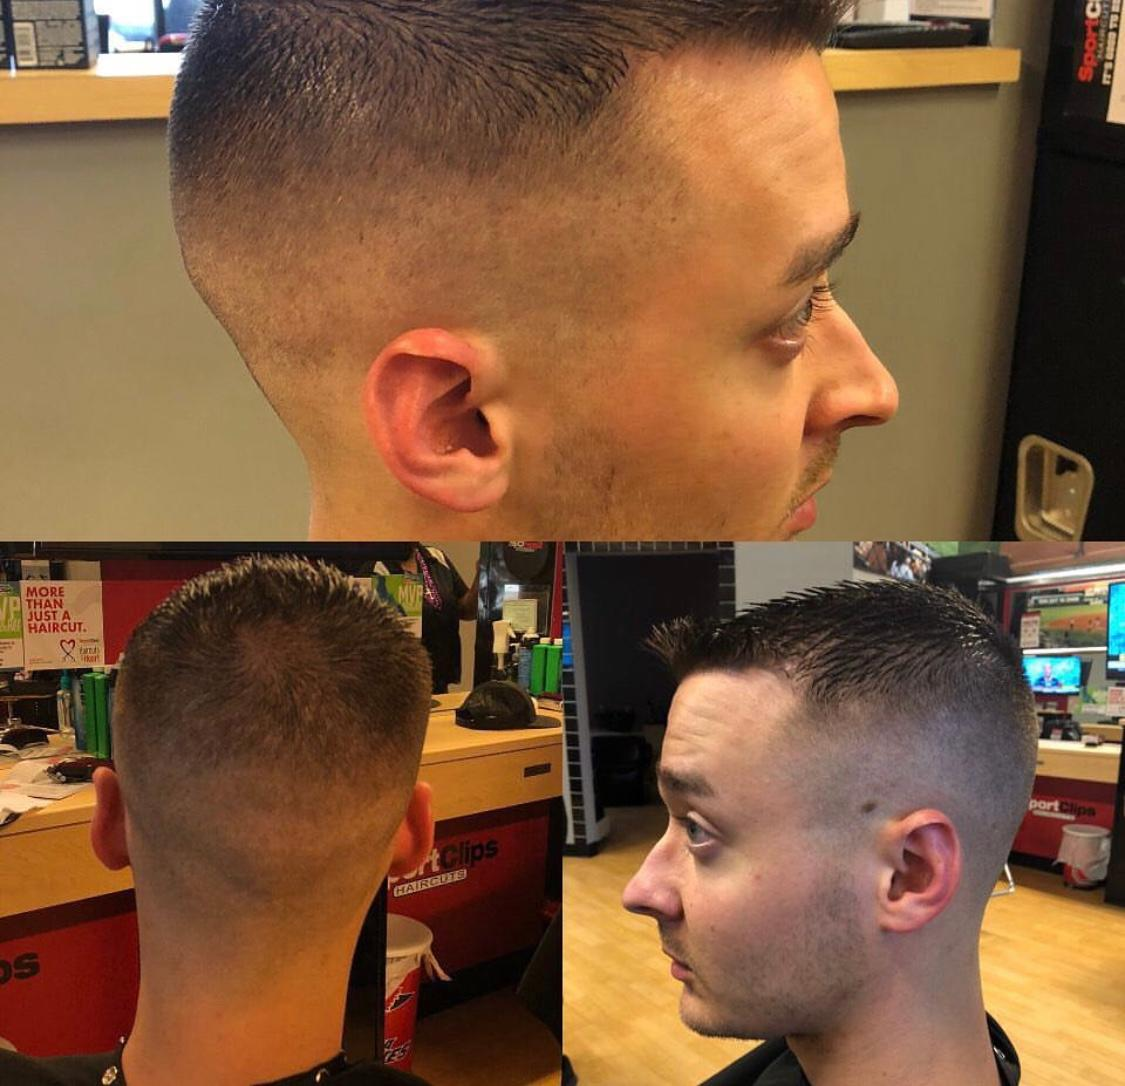 Sport Clips Haircuts of New Port Richey image 27